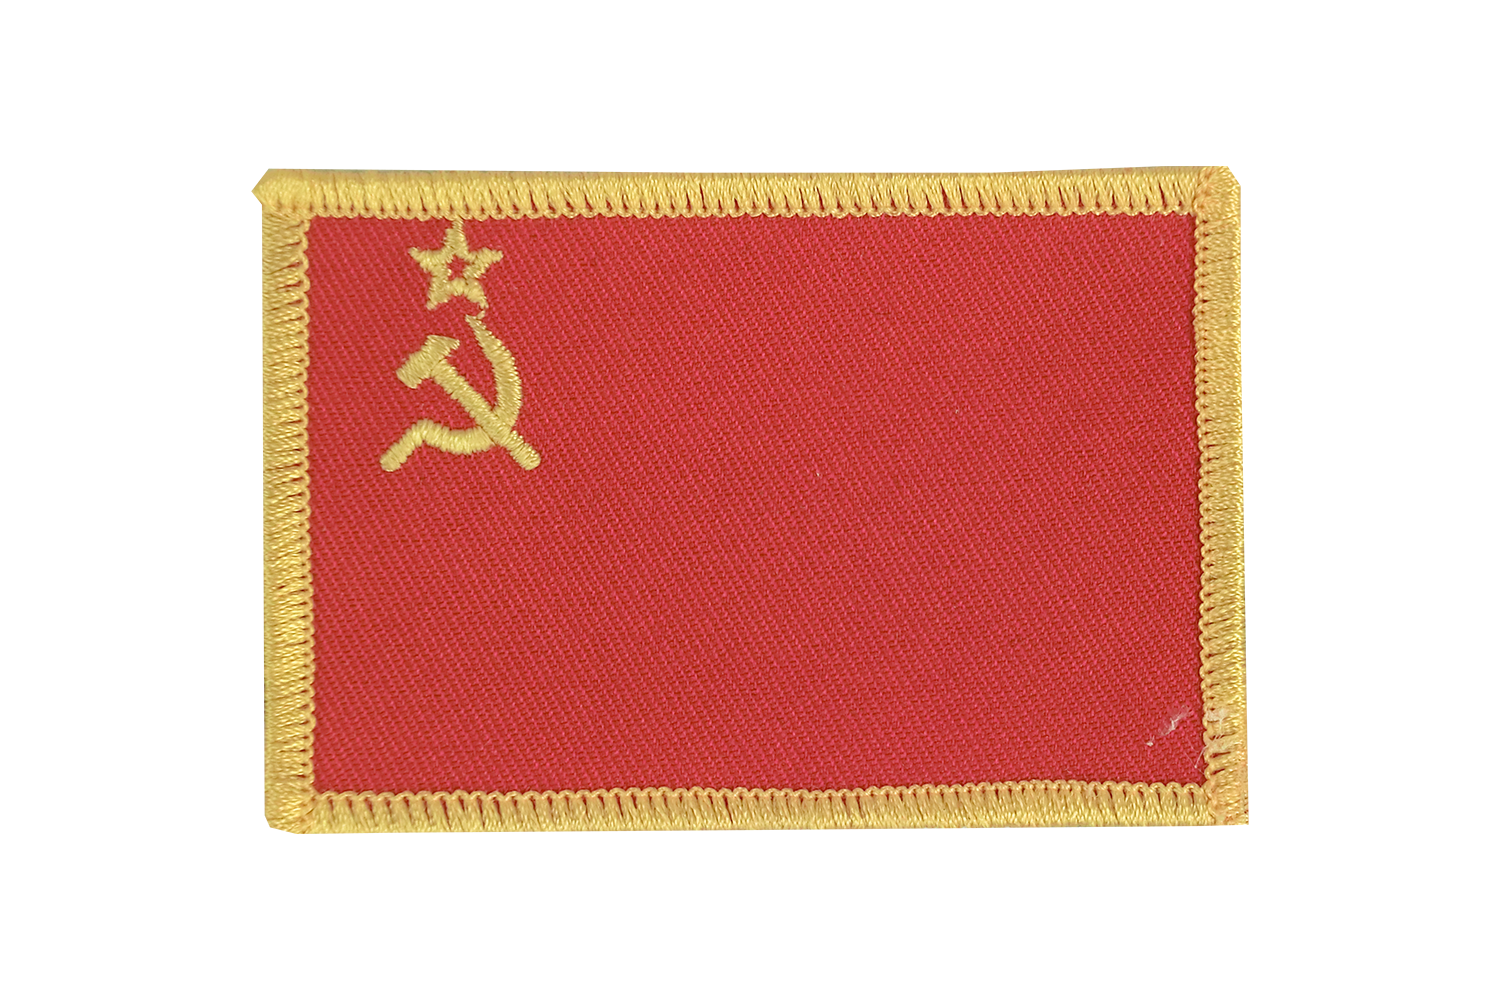 Ussr flag png. Patch soviet union royal